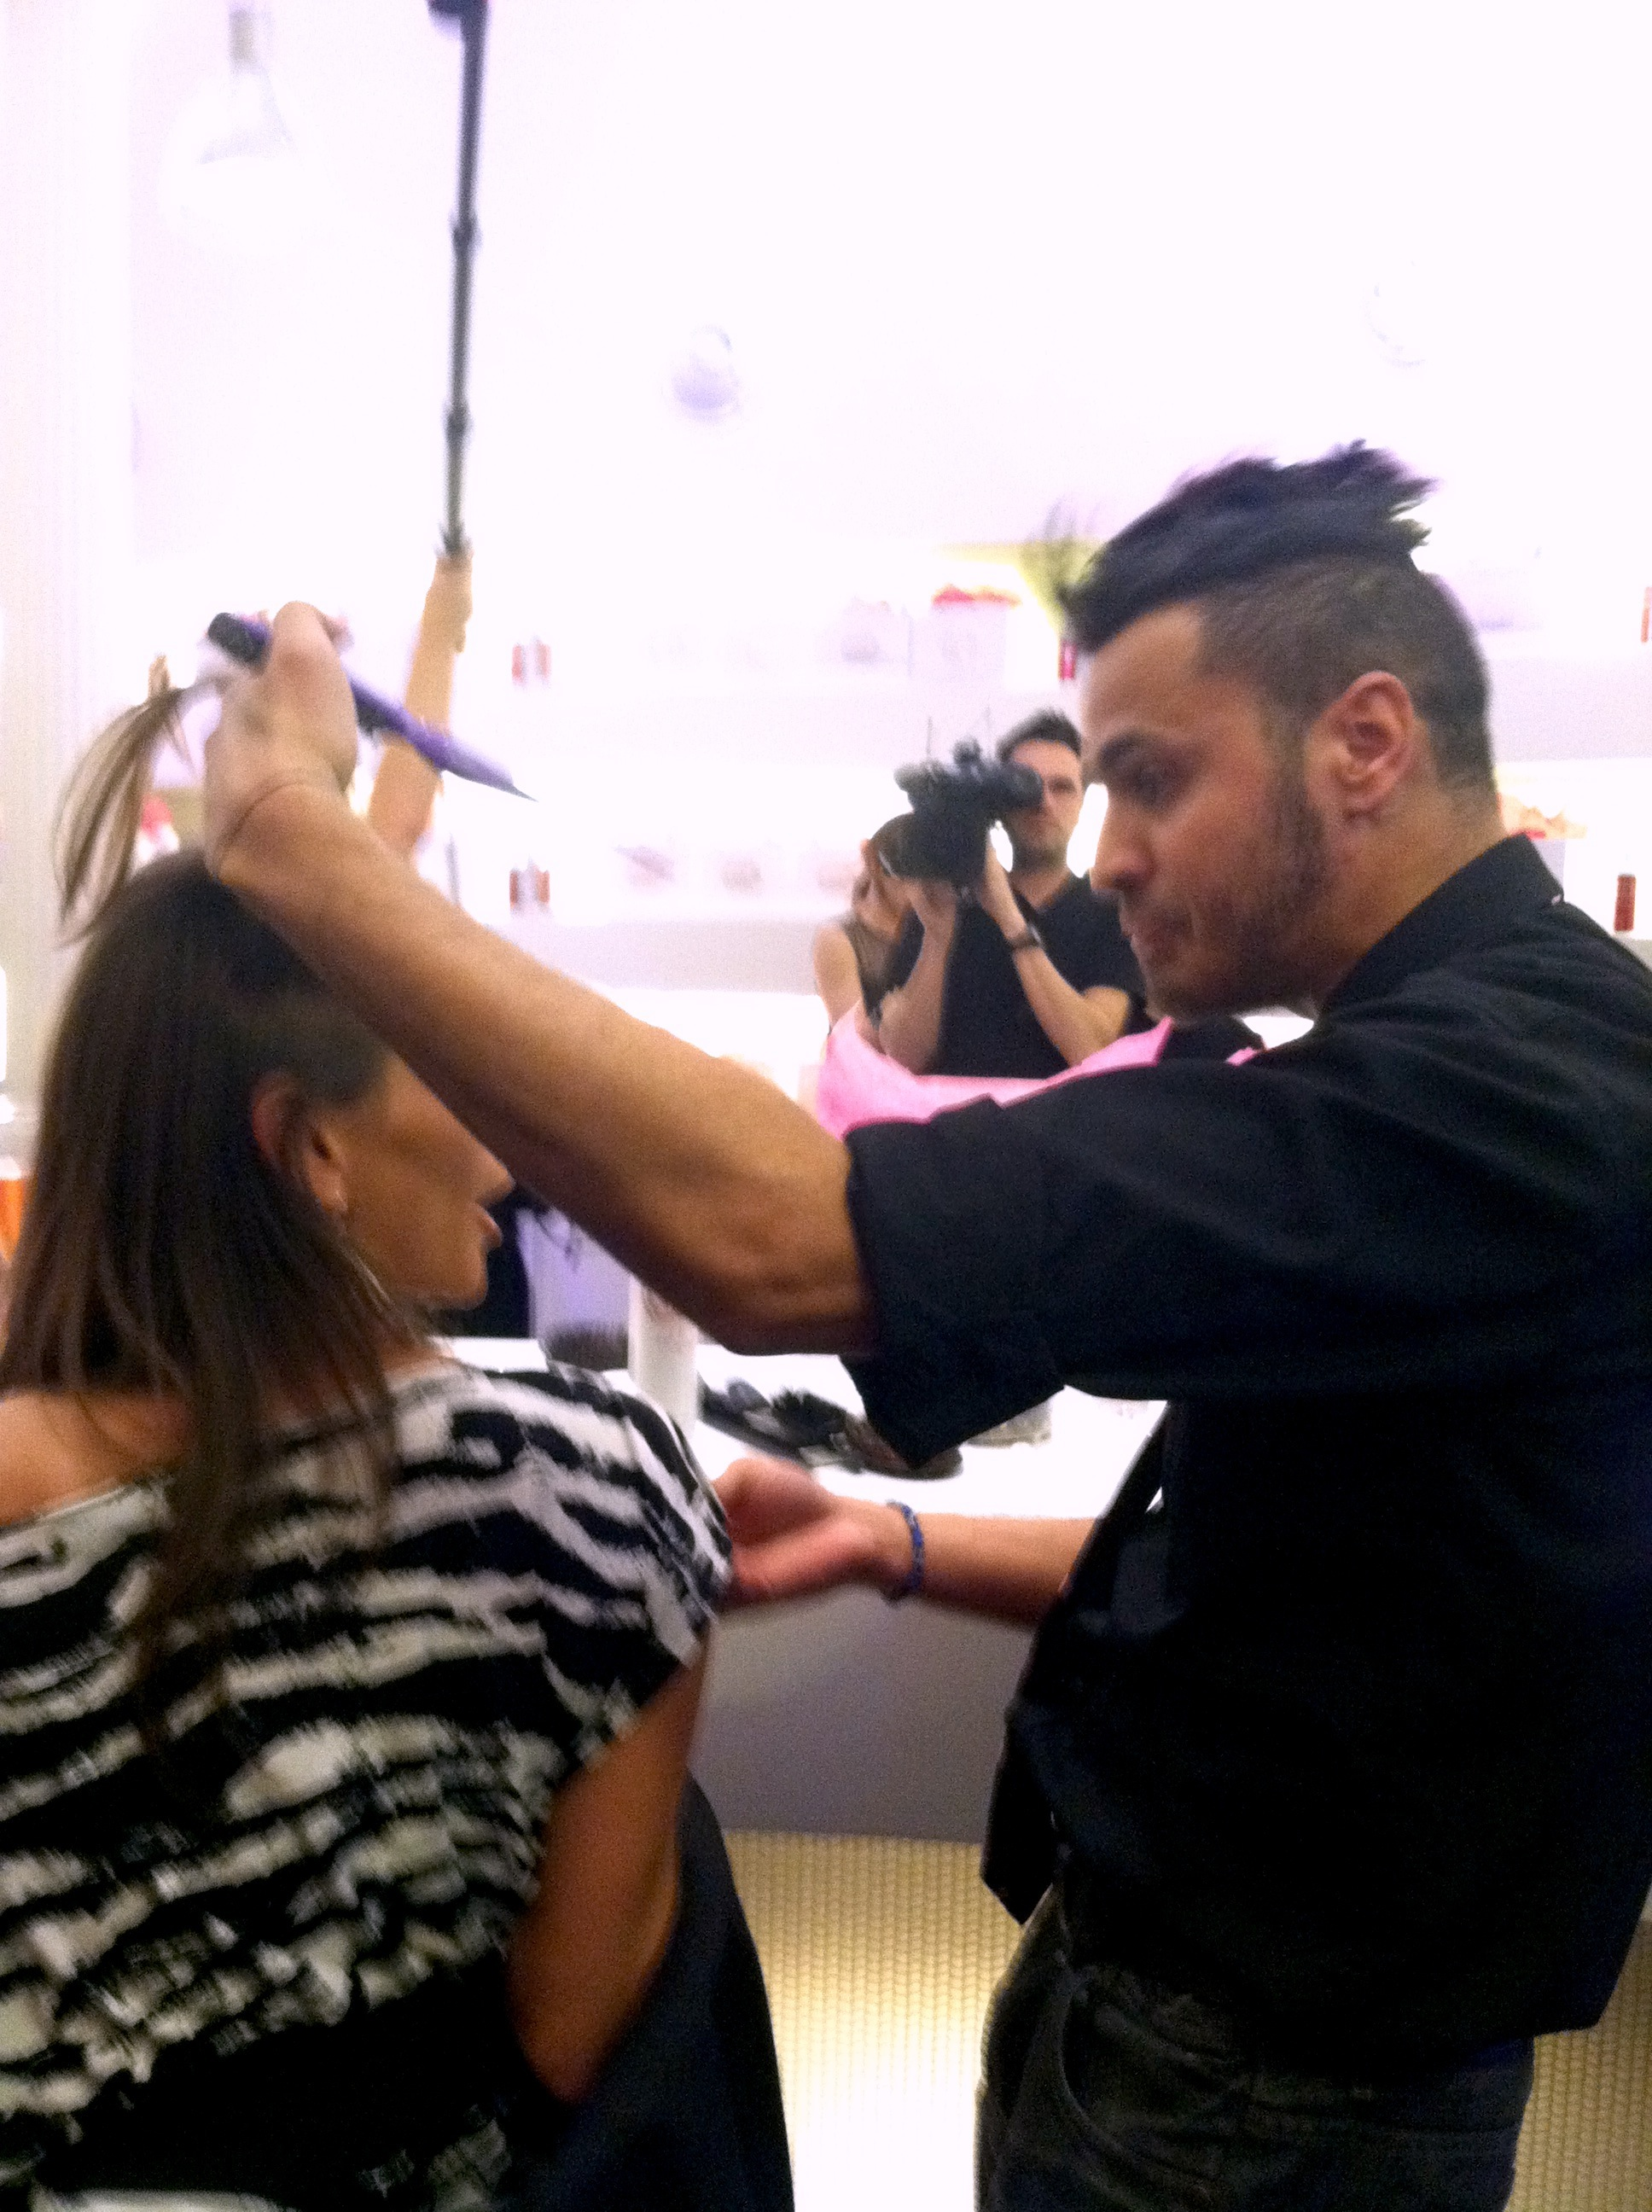 Stylist teaching a guest how to make the most of Over-the-Top Root Lift Spray